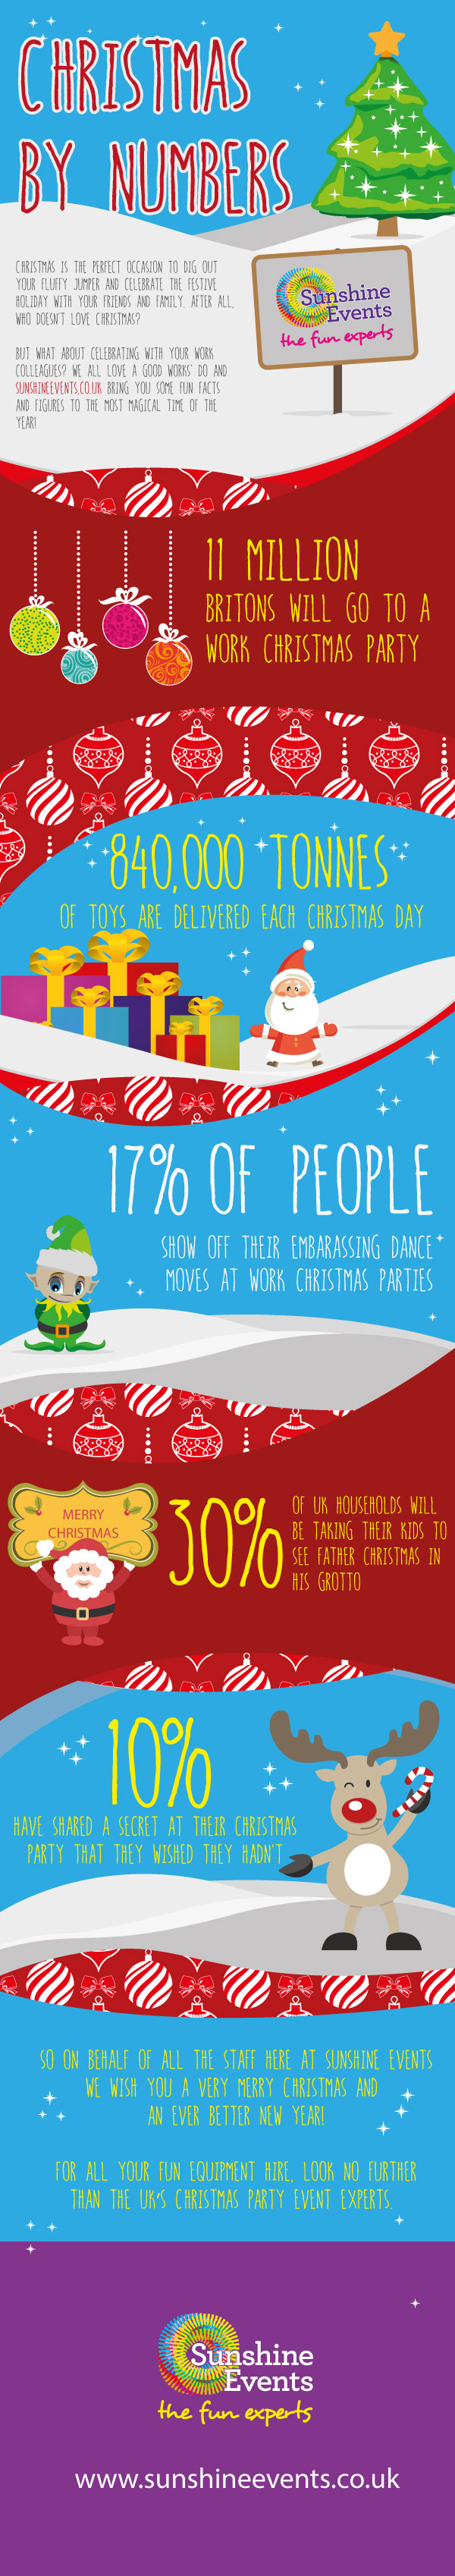 Christmas by numbers infographic